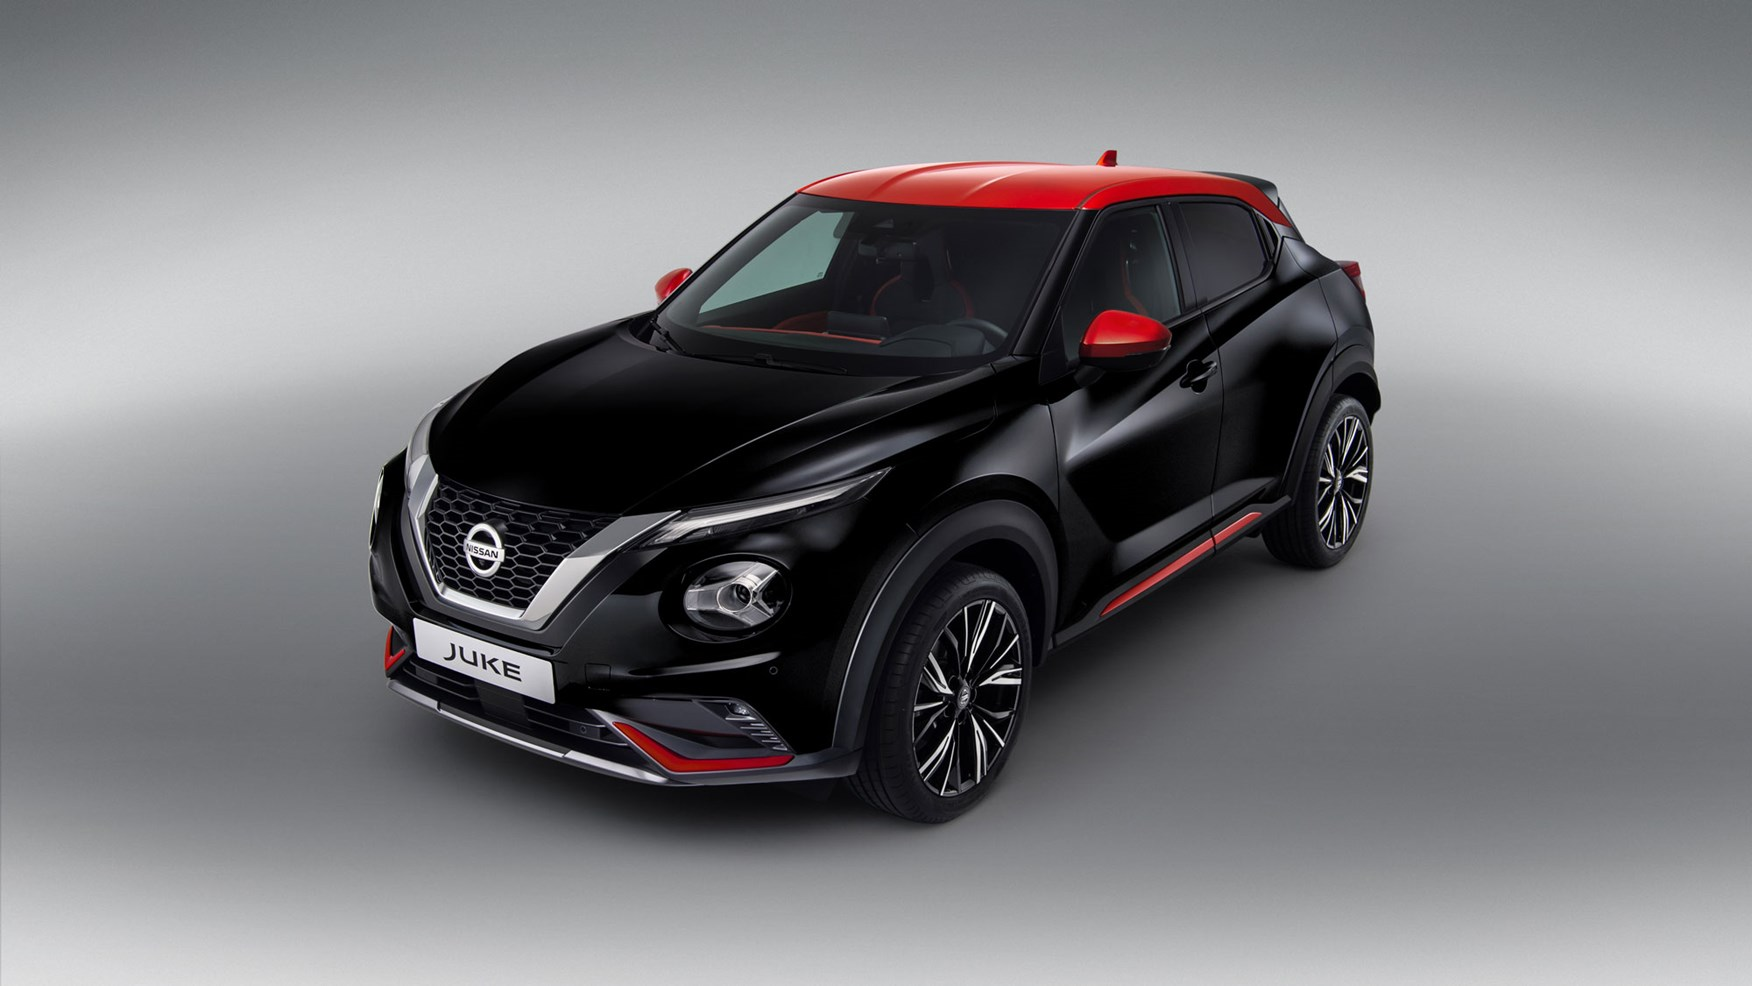 New Nissan Juke Crossover